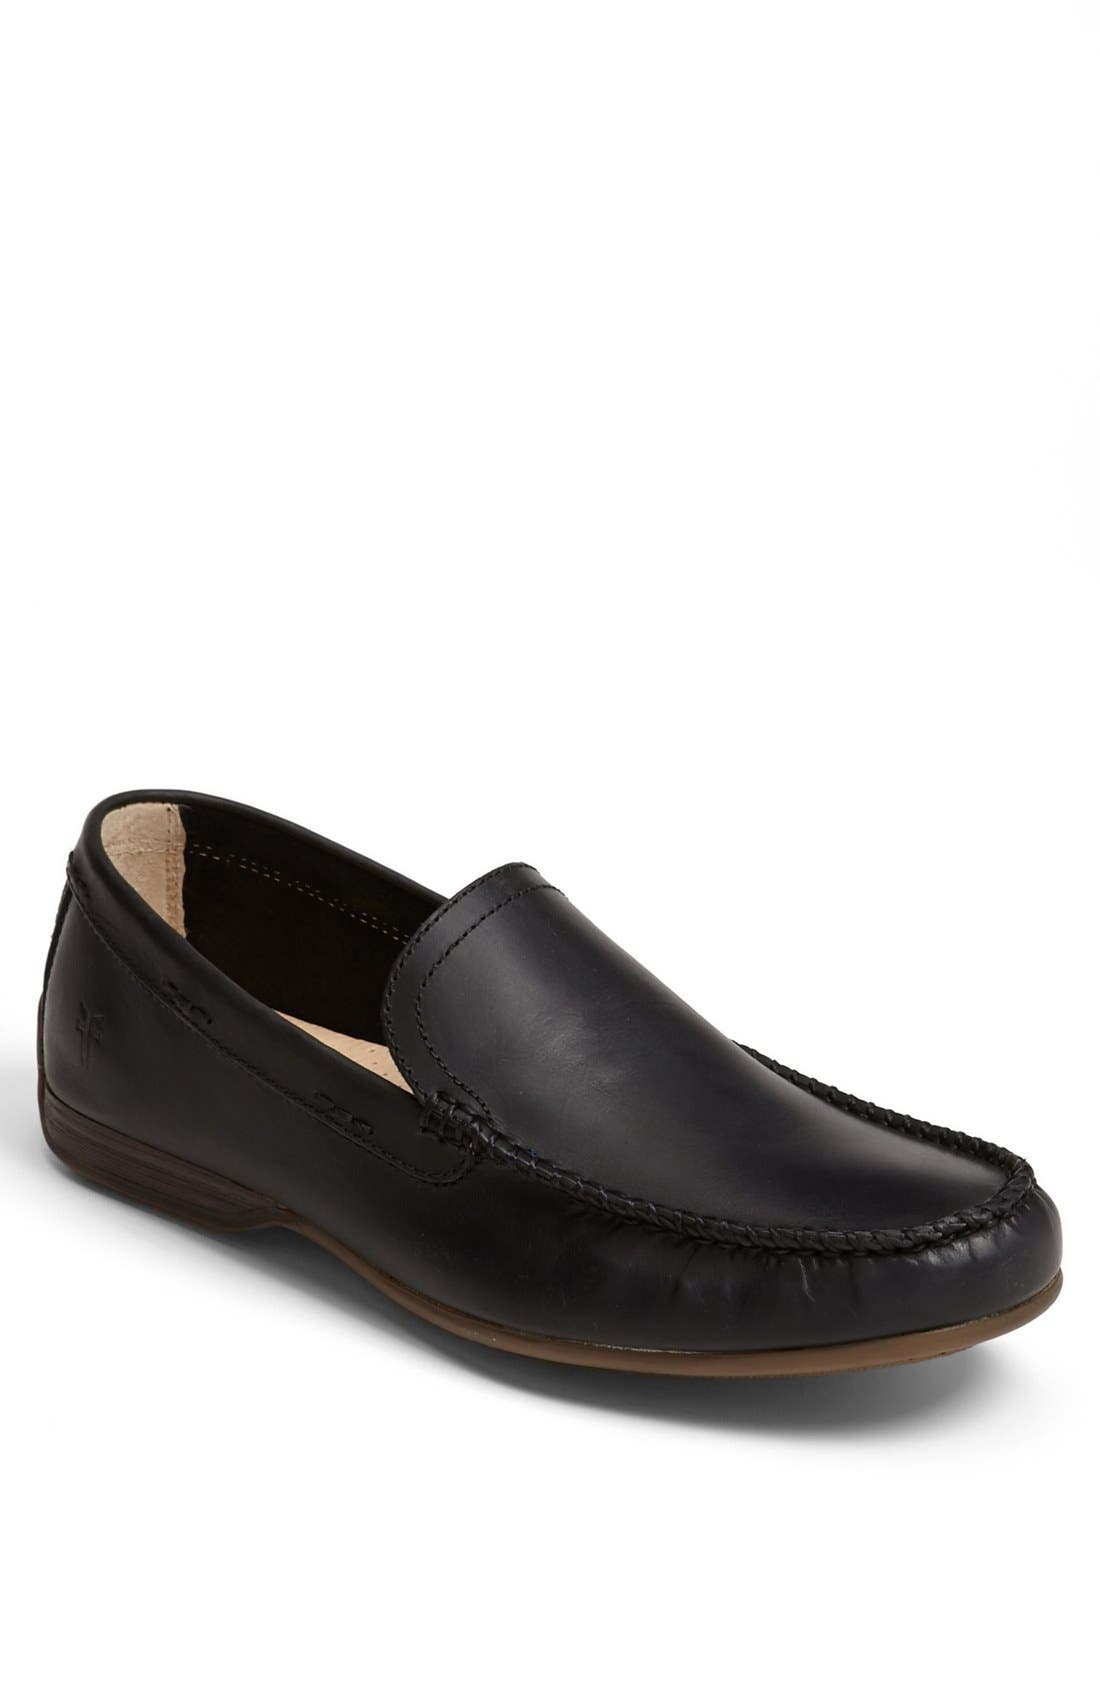 'Lewis' Venetian Loafer,                             Main thumbnail 1, color,                             BLACK